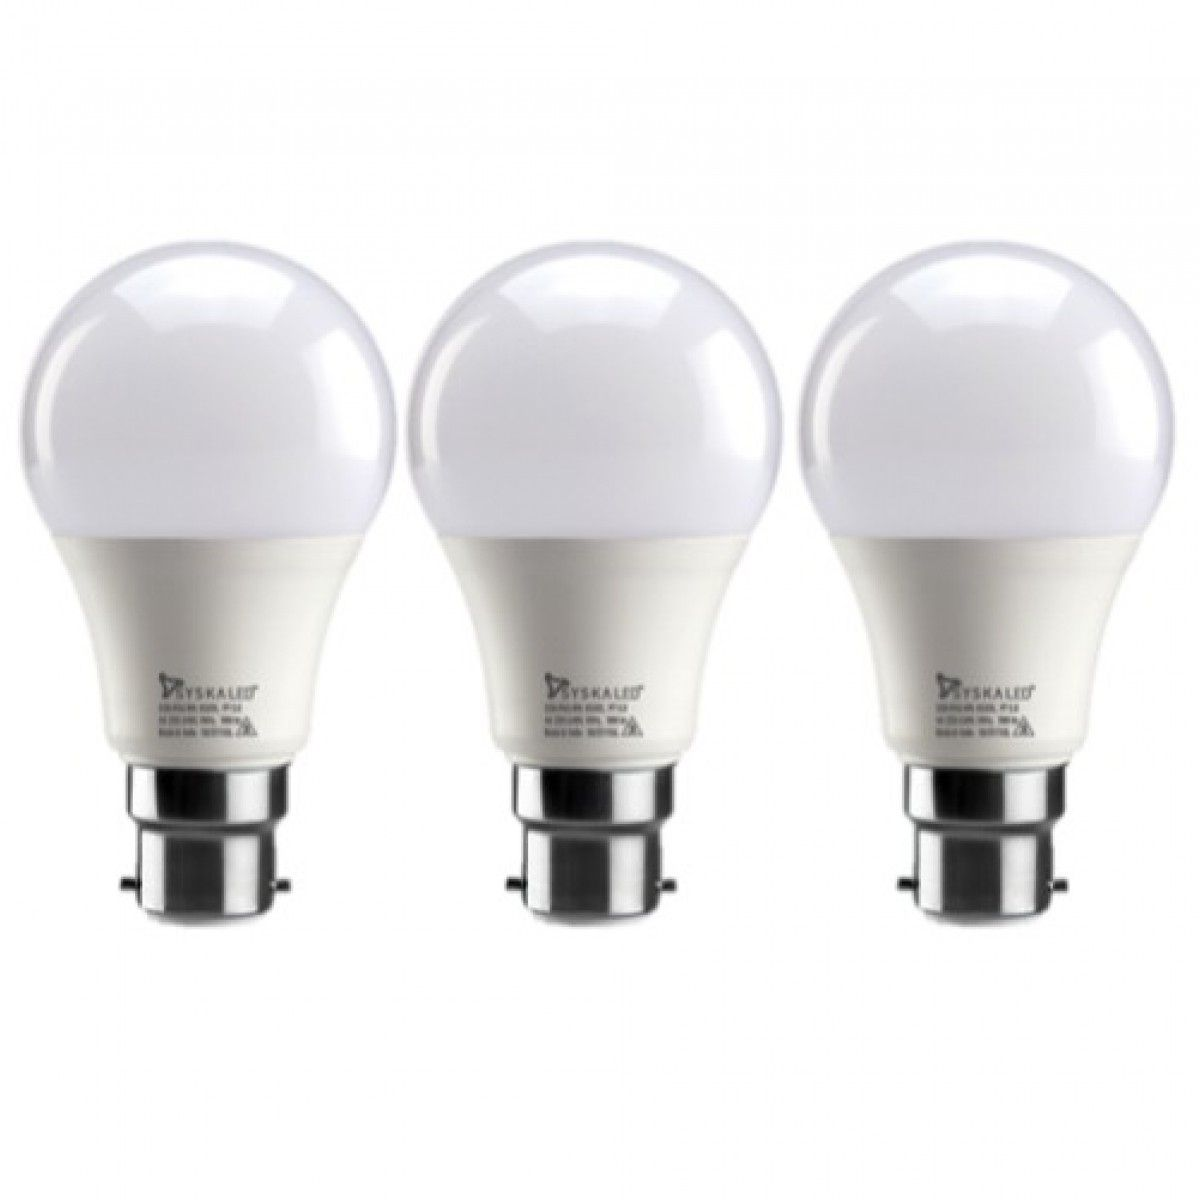 Led Lighting Prices Buy Online Led Lights At Perfect Prices From Lumicharge In